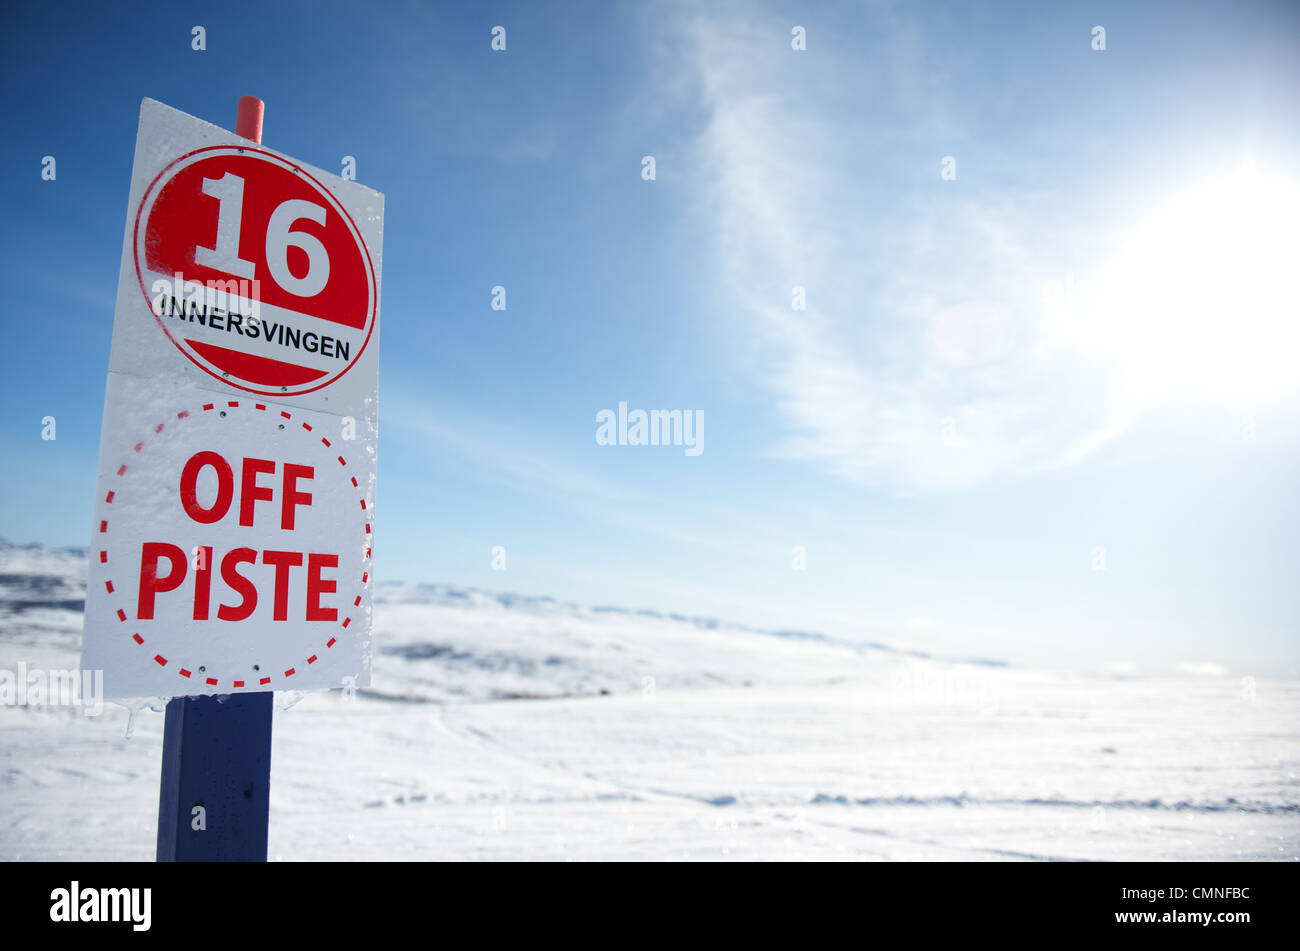 Off piste skiing is great at the Hovden skisenter in Setesday, southern Norway - Stock Image